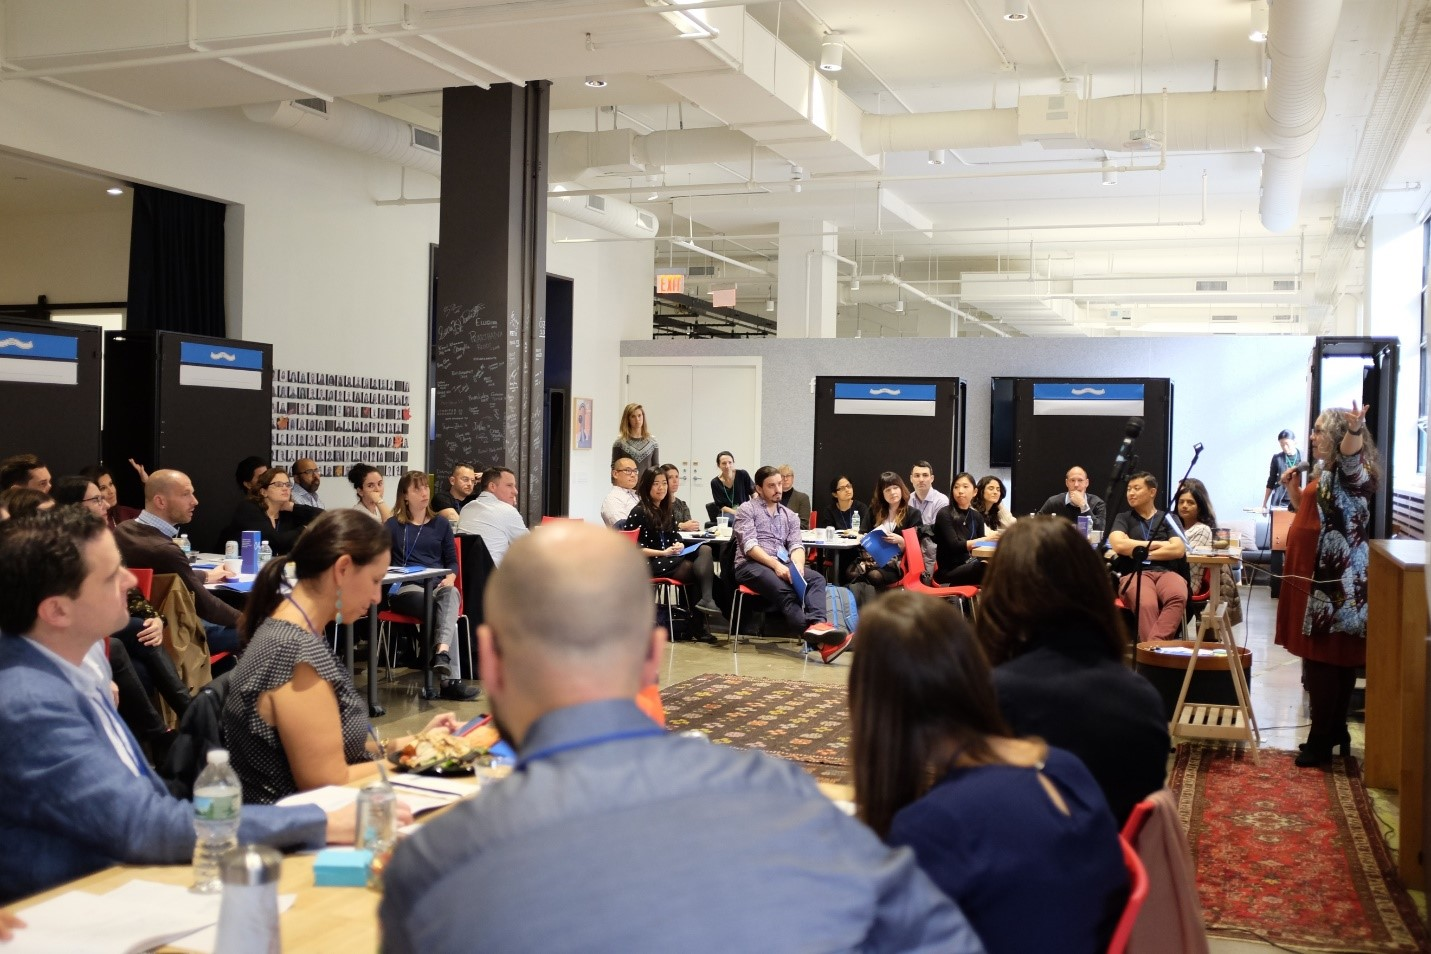 American Express defining digital outcomes for 2019.